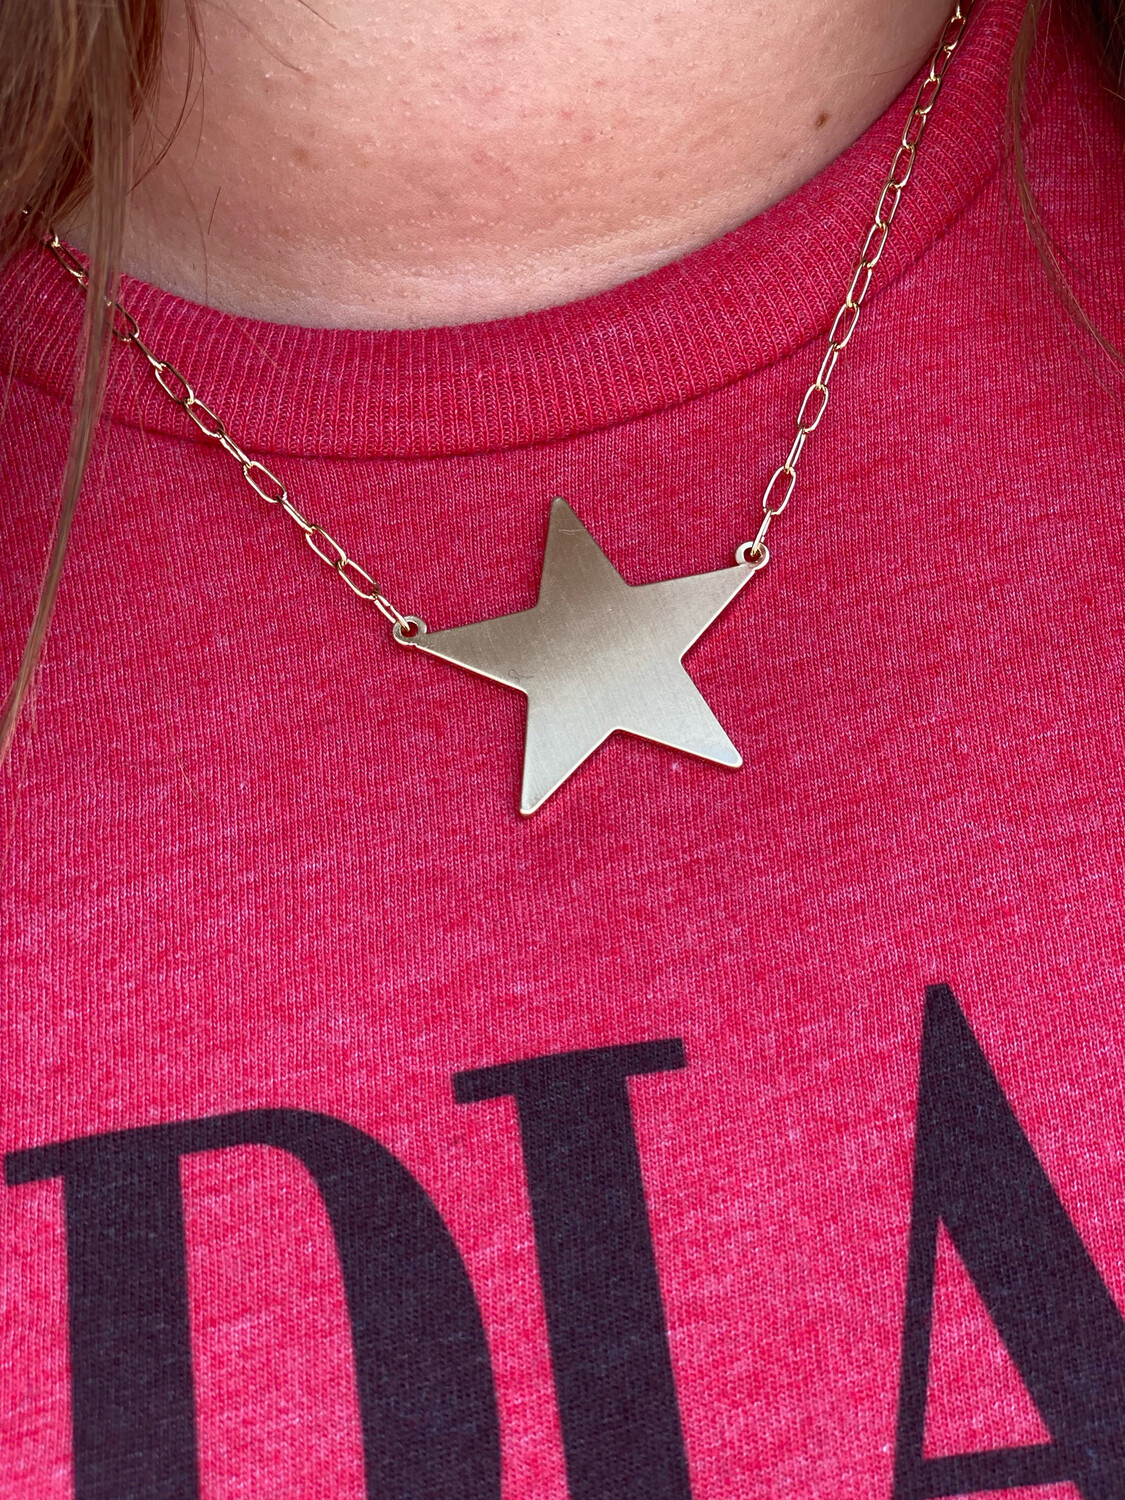 Muted Gold Star Necklace